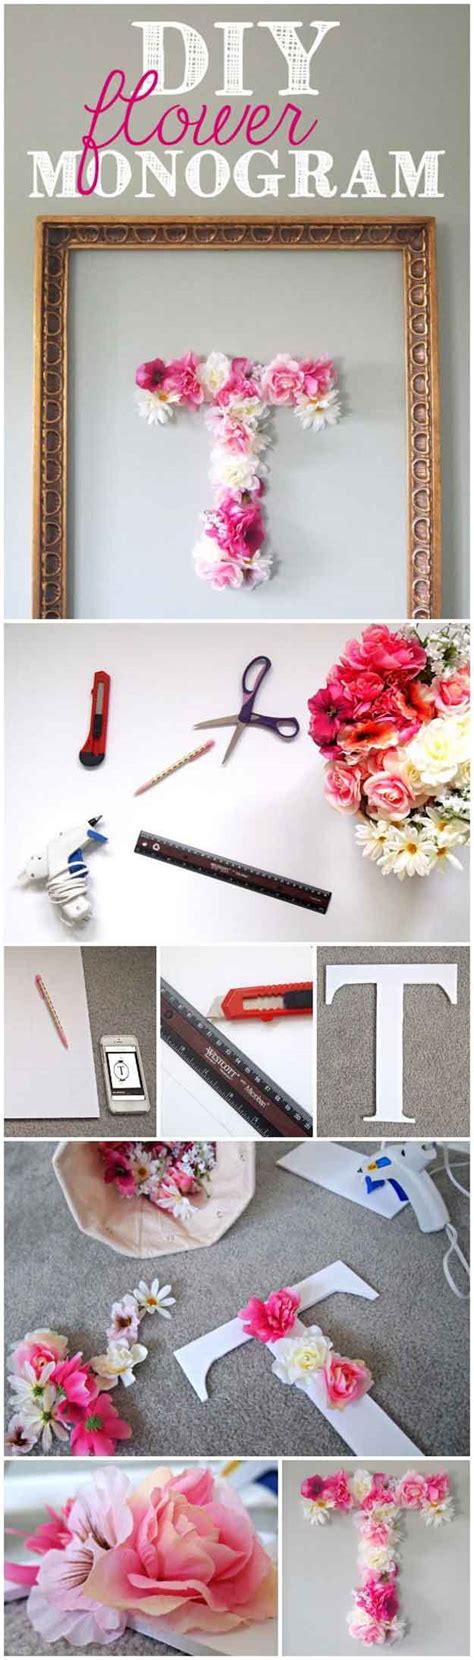 diy teenage bedroom decor diy projects for teens bedroom diy ready